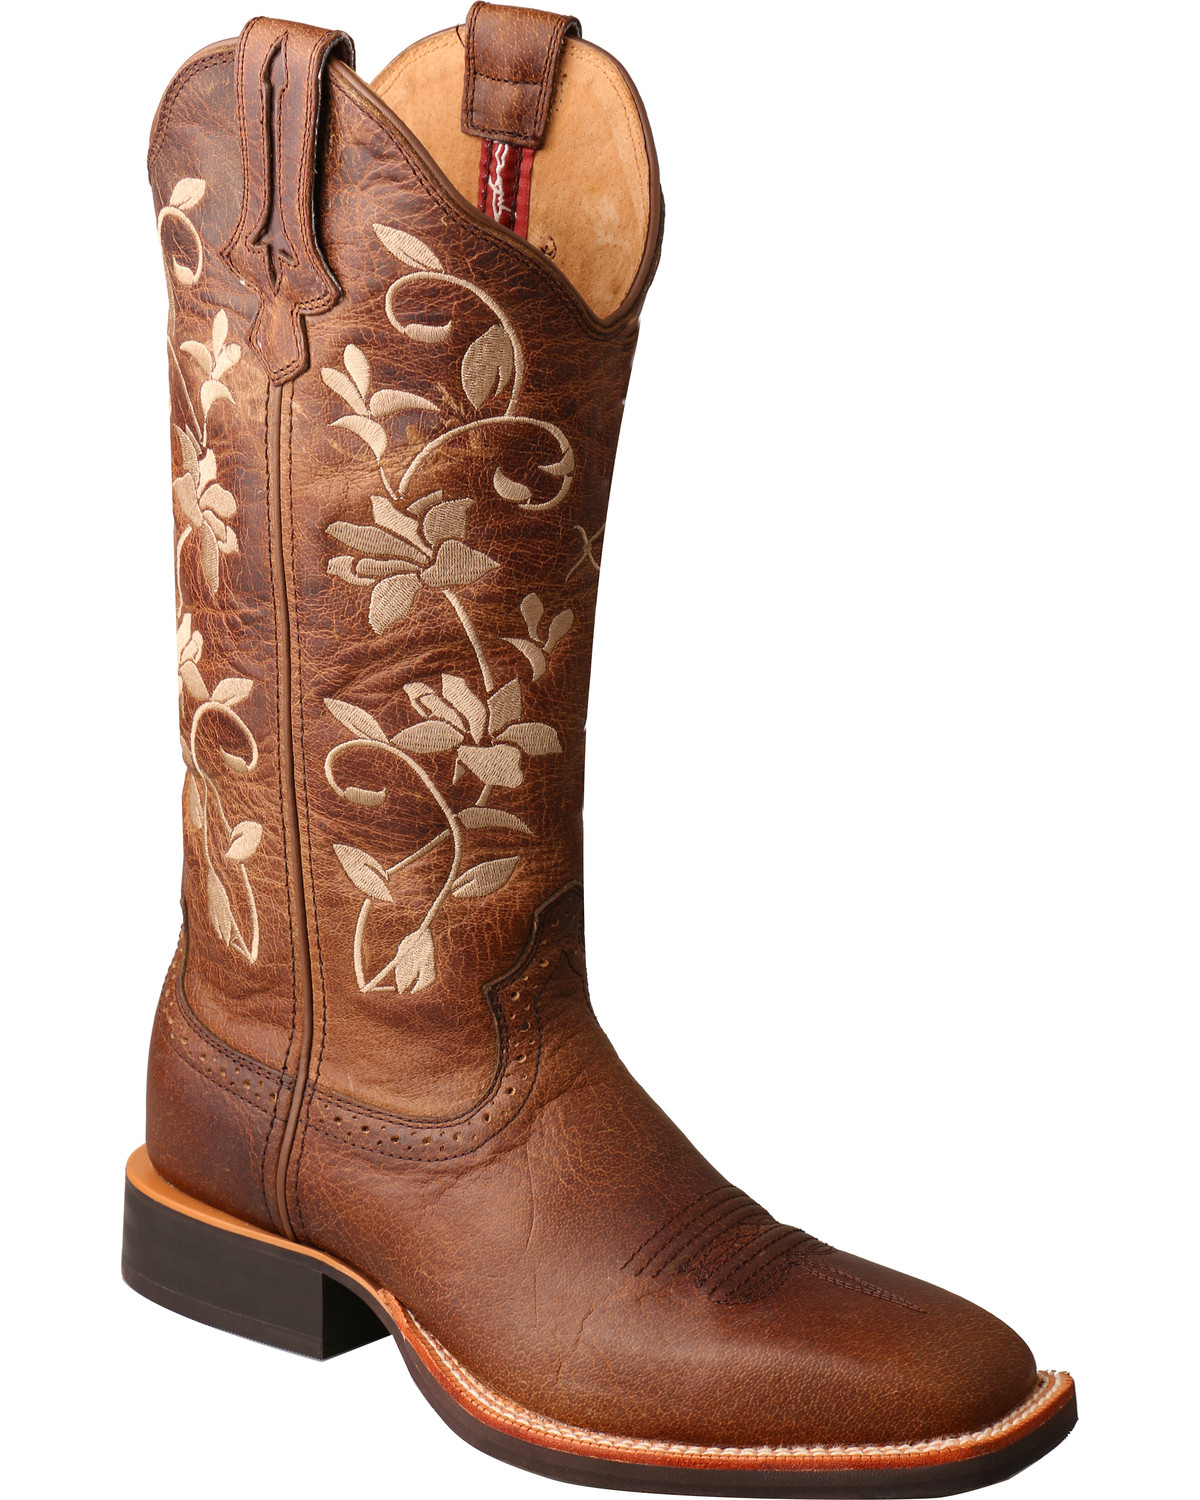 Cowgirl Boots With Flowers